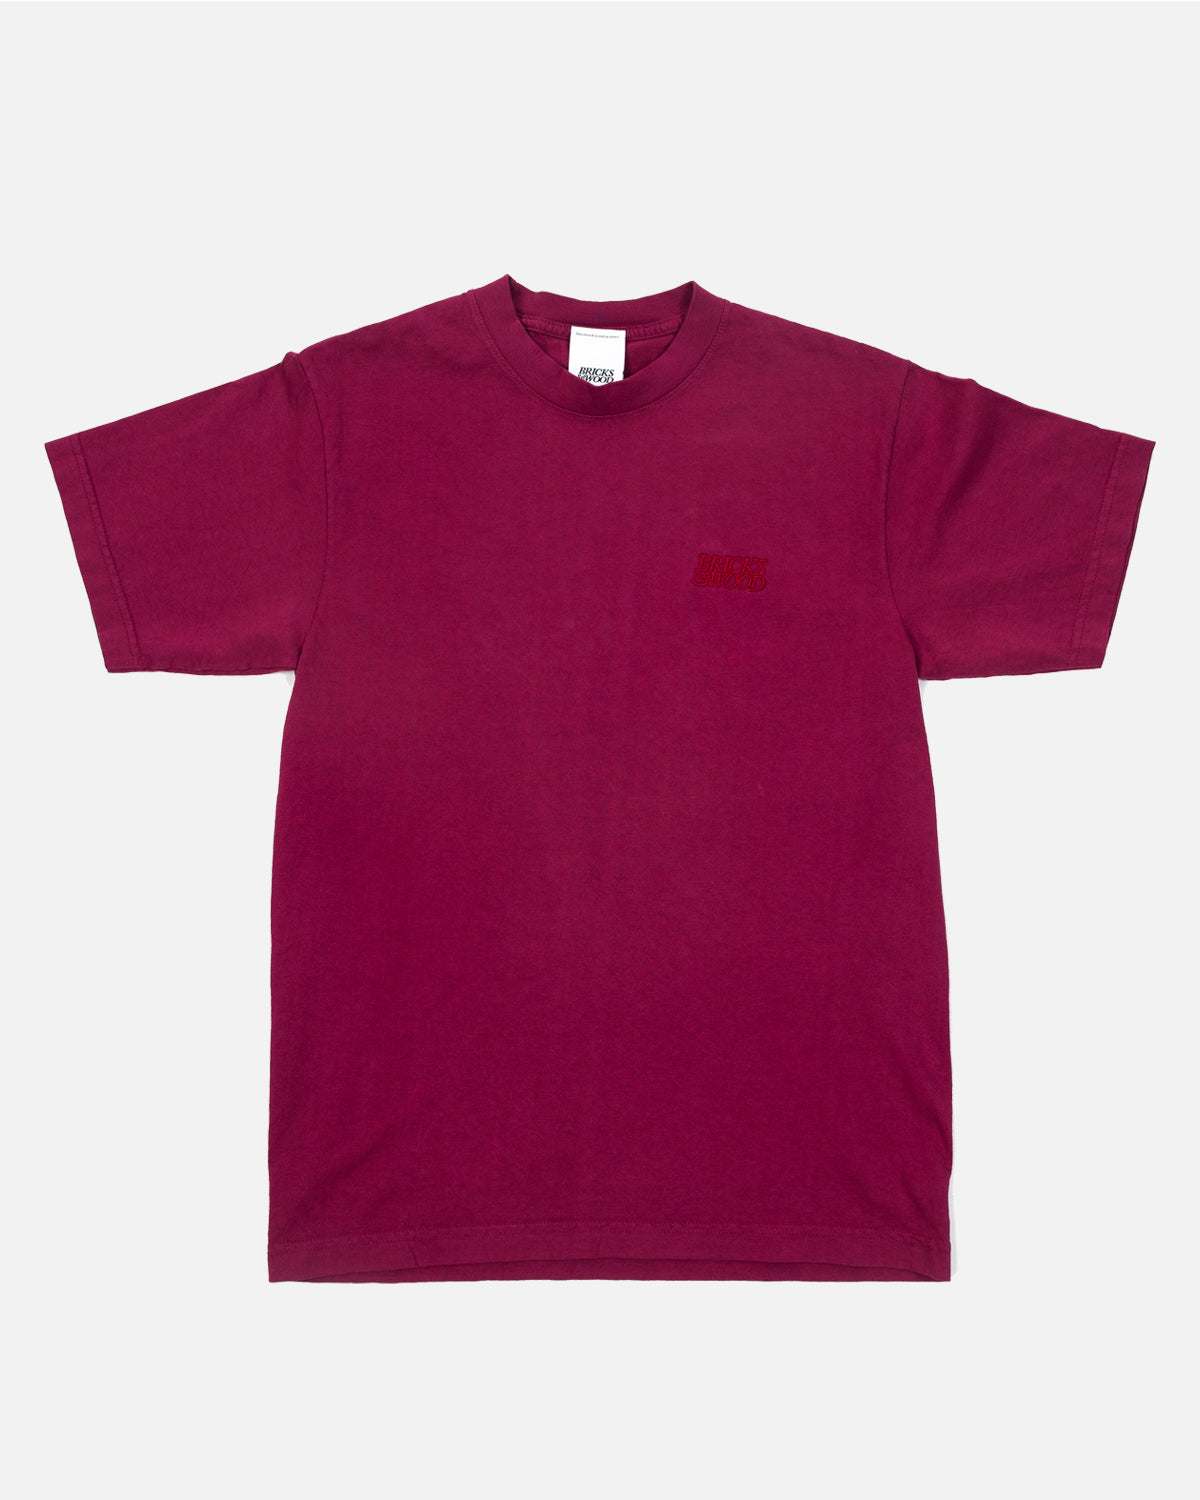 Bricks & Wood Fuchsia Tonal Logo Tee